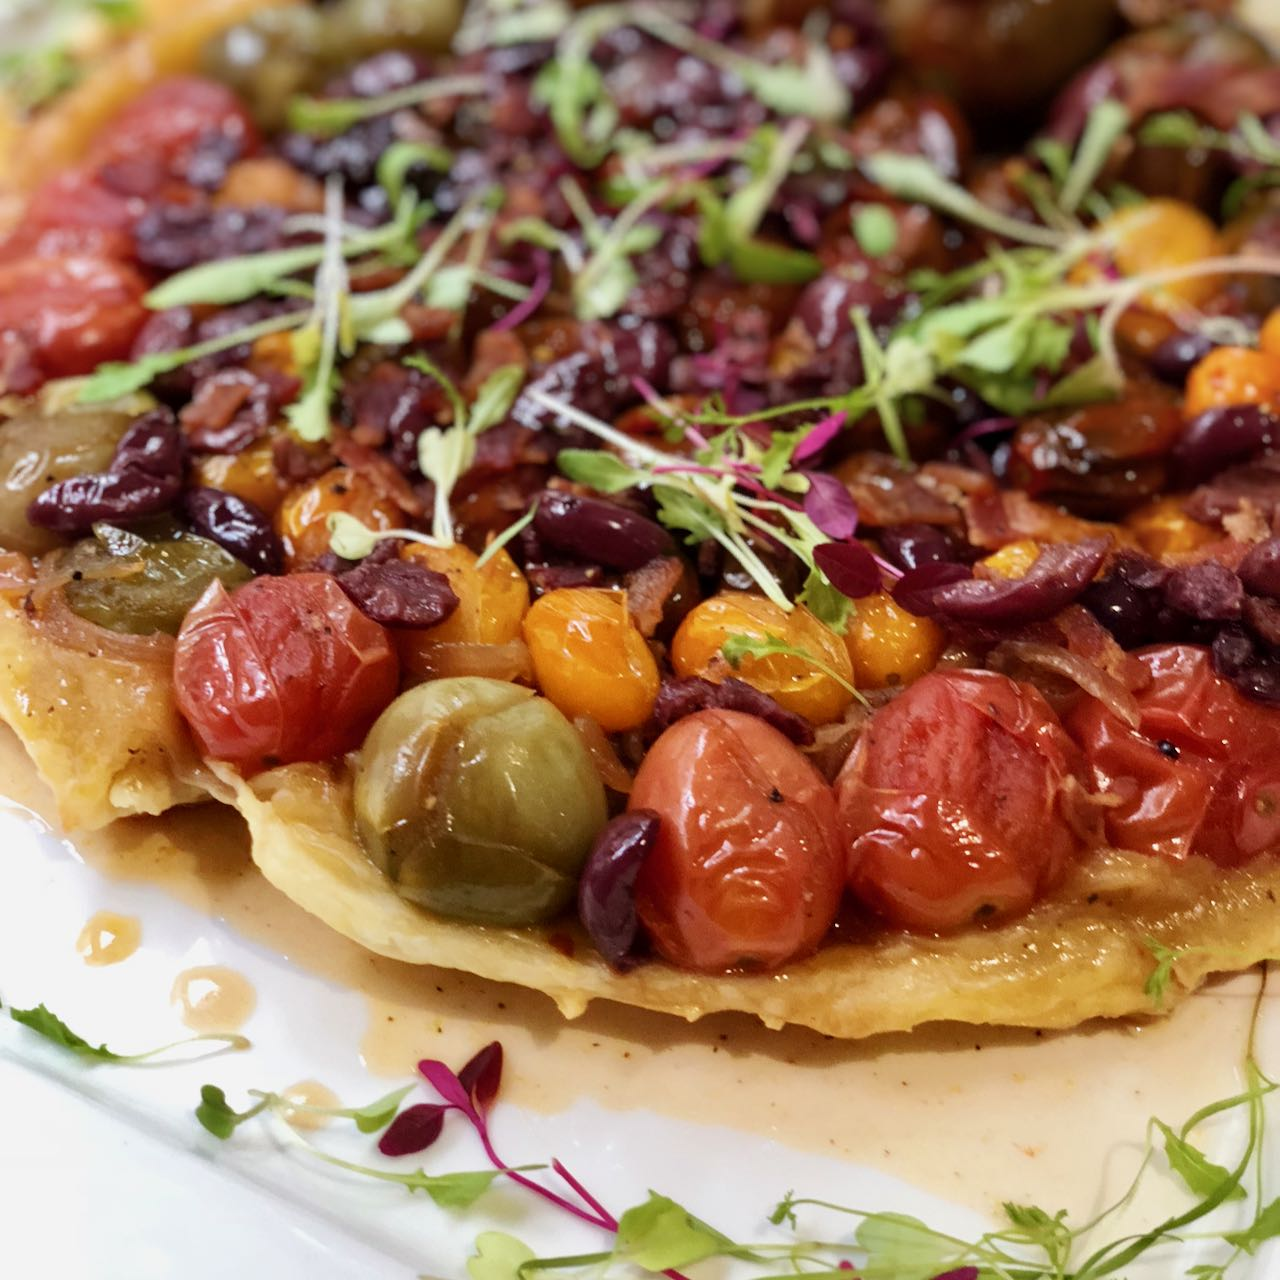 Caramelised Tomato, Bacon and Olive Tarte Tatin